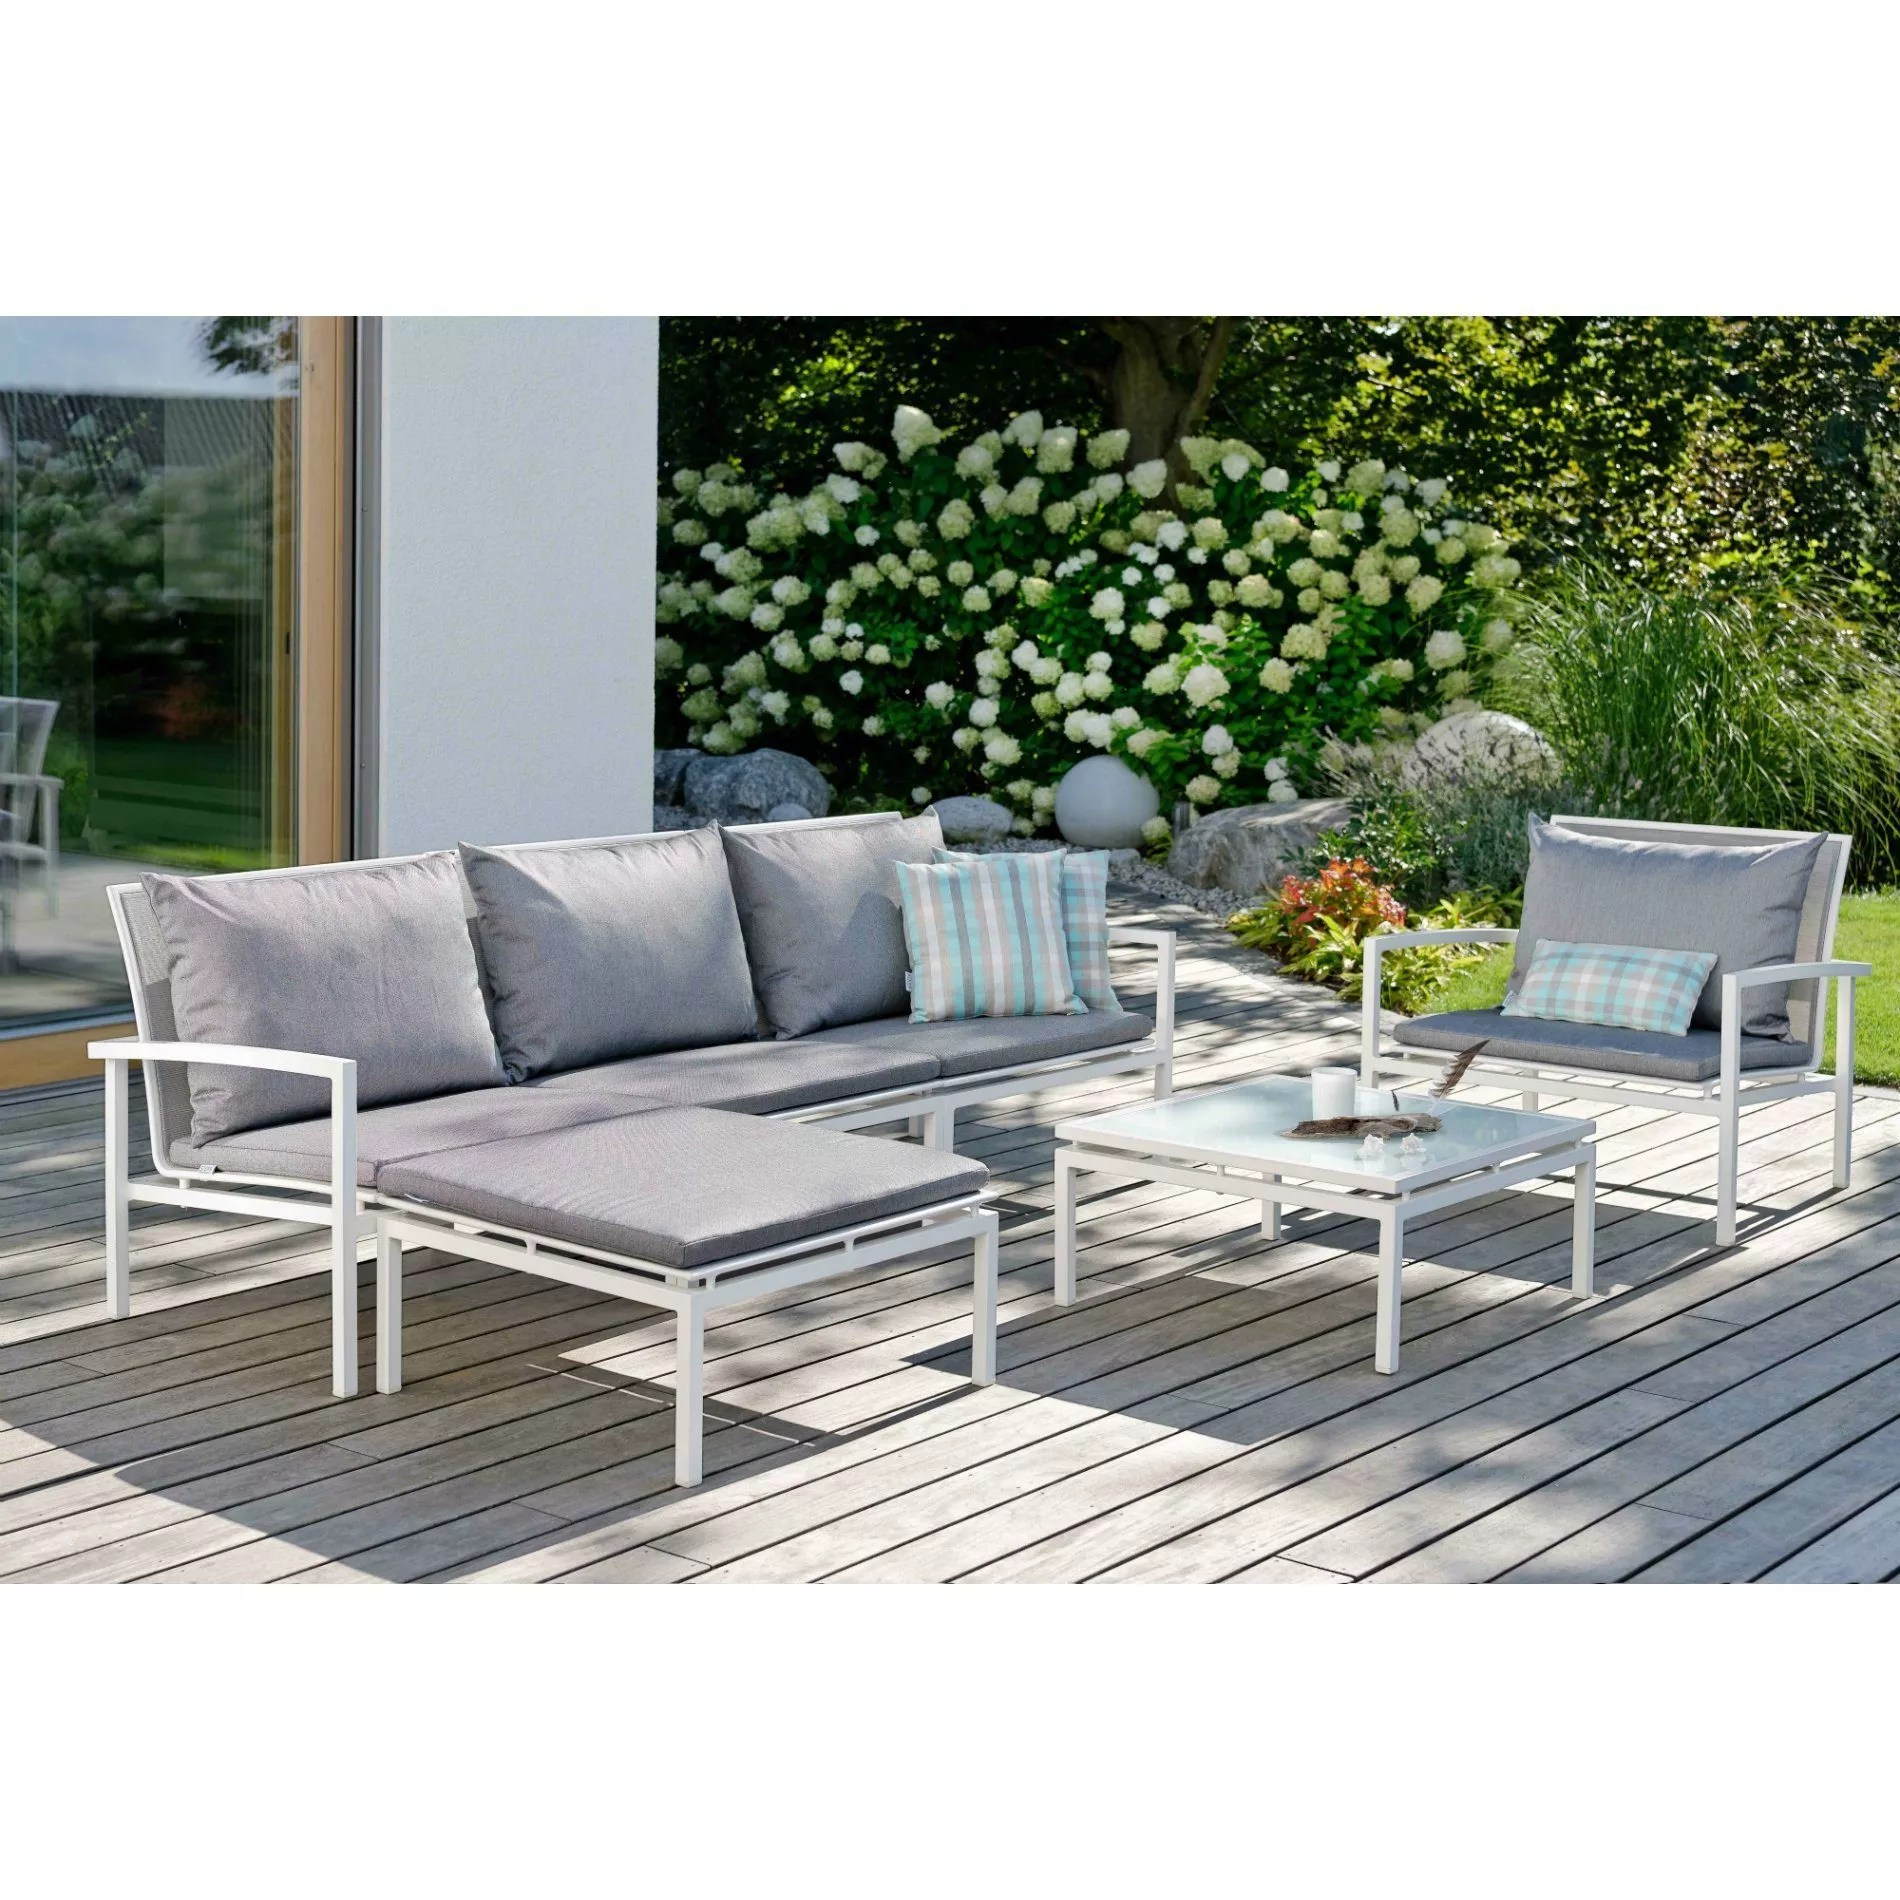 Stern Quot Skelby Quot Loungeset 15 Tlg Gestell Aluminium Weiß